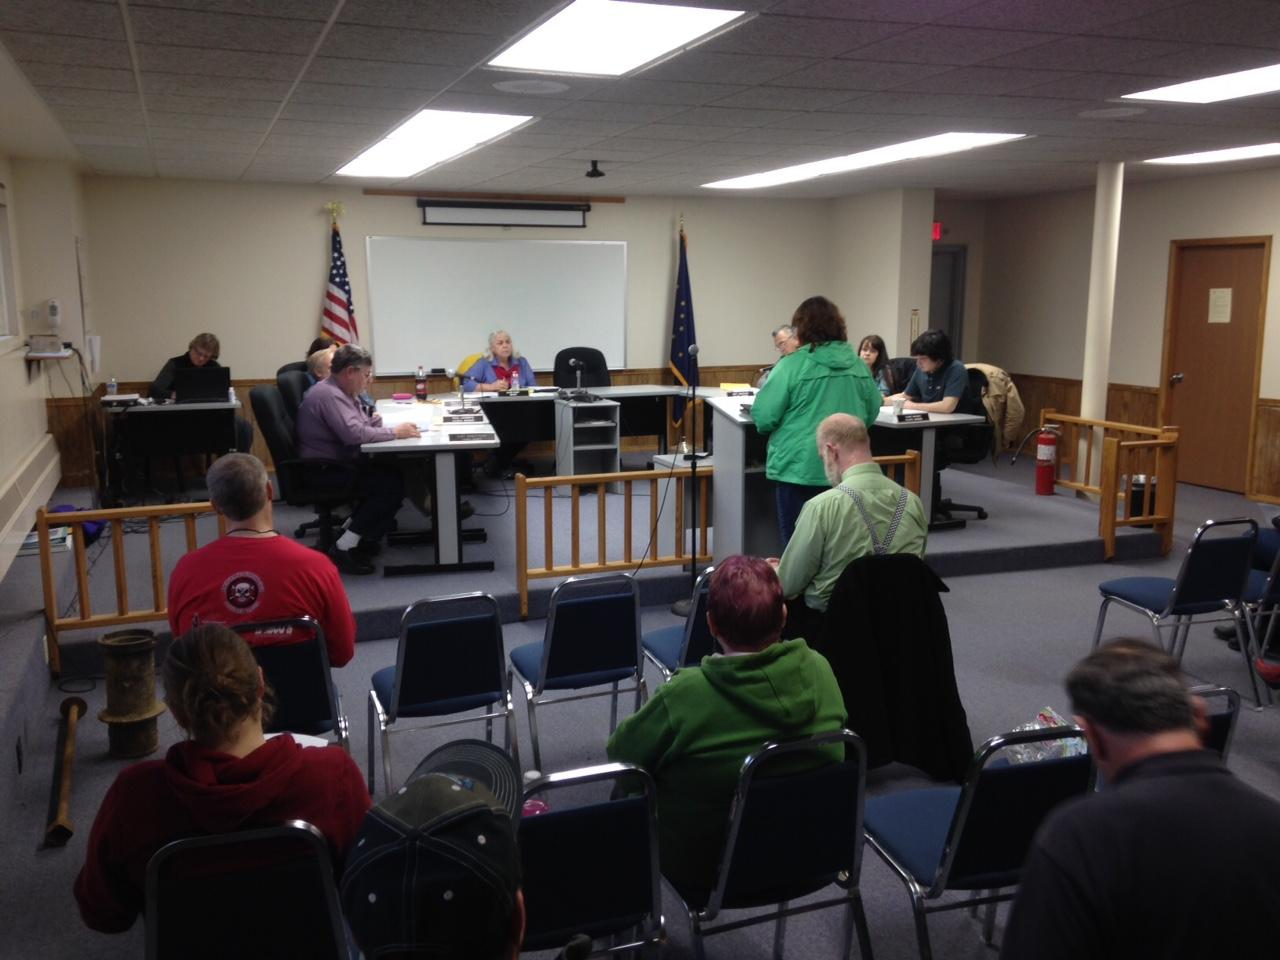 Kim Parker addressed the Dillingham city council Thursday night, asking them to lift a protest of a liquor license transfer and clear the way for a new package store on Raspberry Circle. (Photo by KDLG)